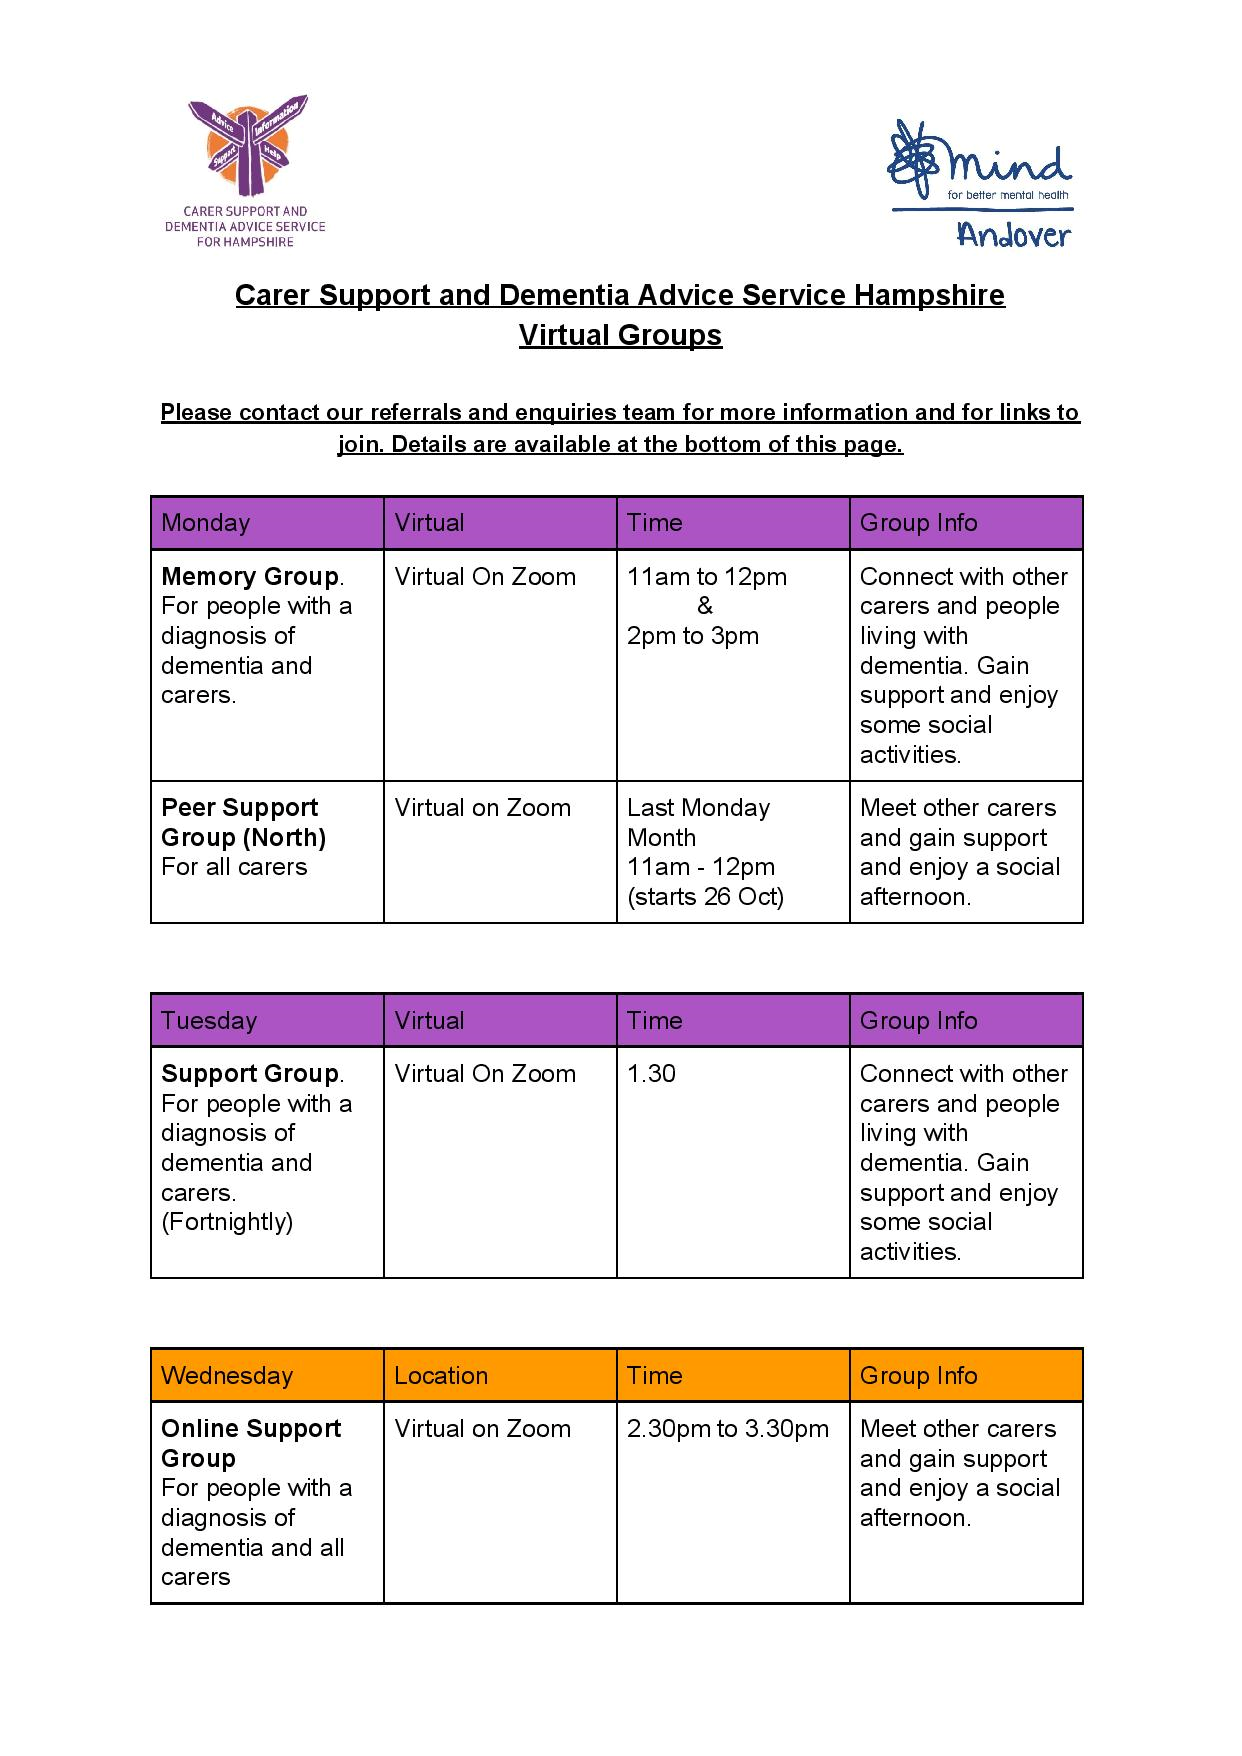 Carer Support and DA Virtual Groups